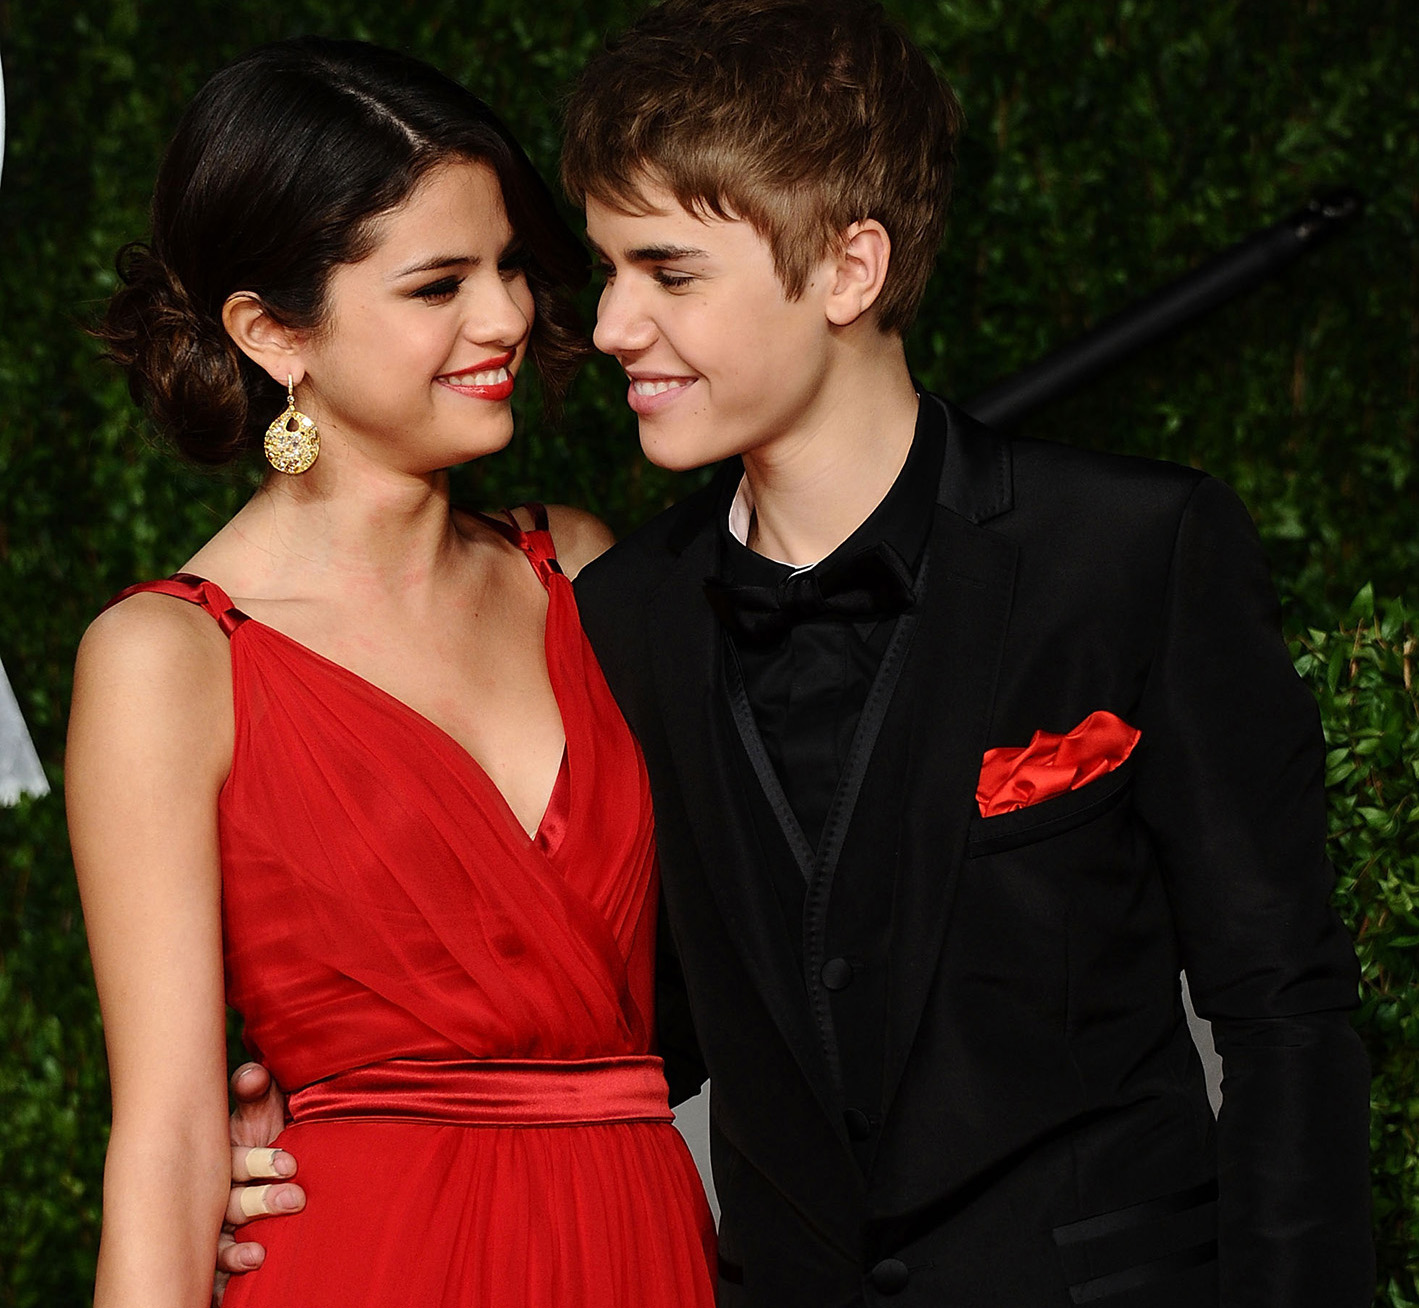 Gomez and Bieber together at the 2011 Vanity Fair Oscar Party.